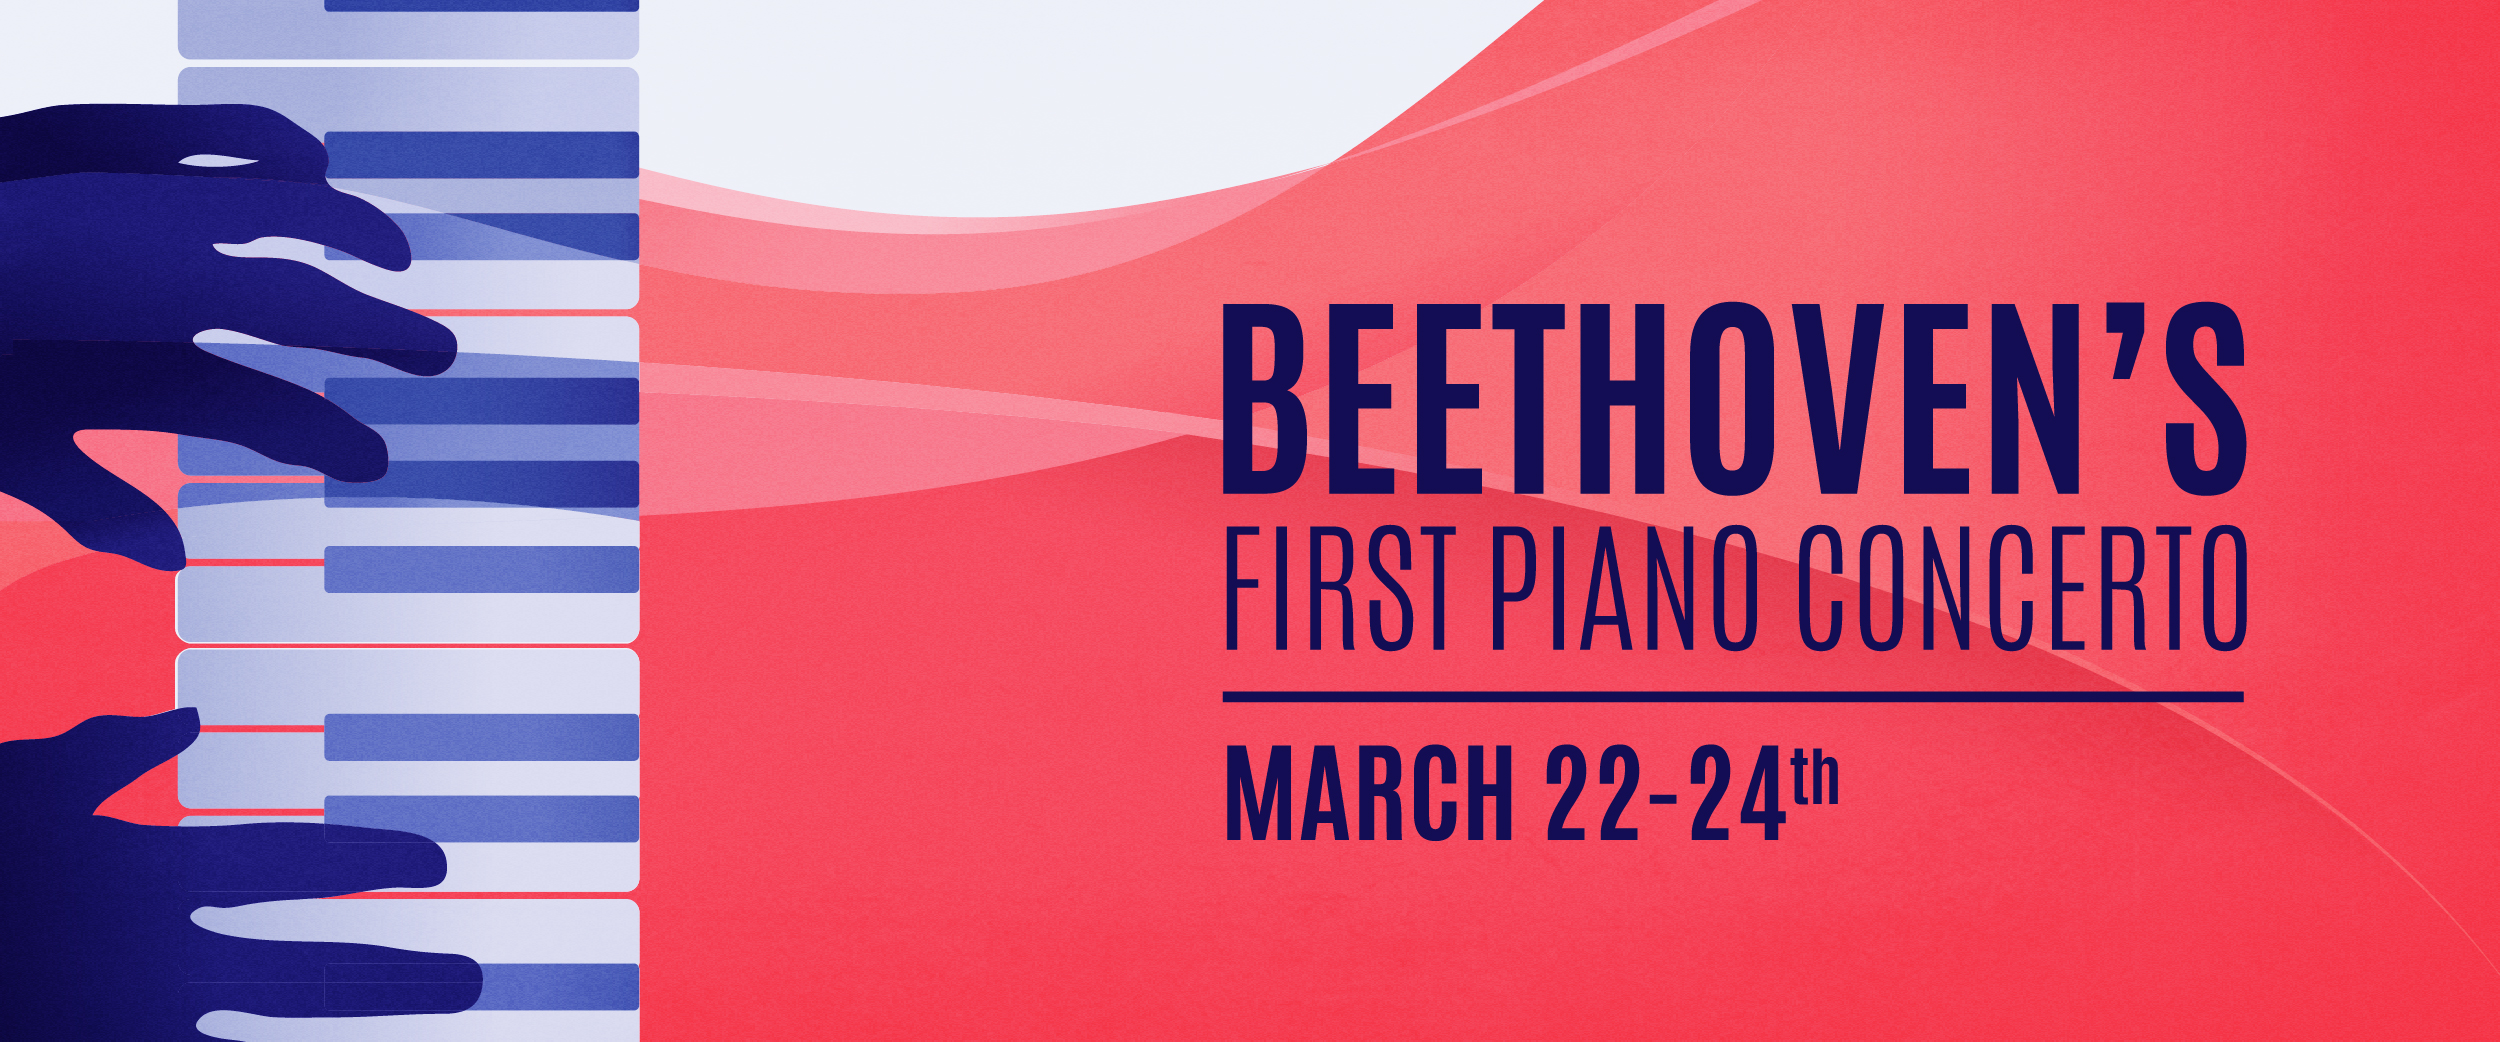 JSO18.19_Banners_ConcertPage_BeethovensFirst.jpg